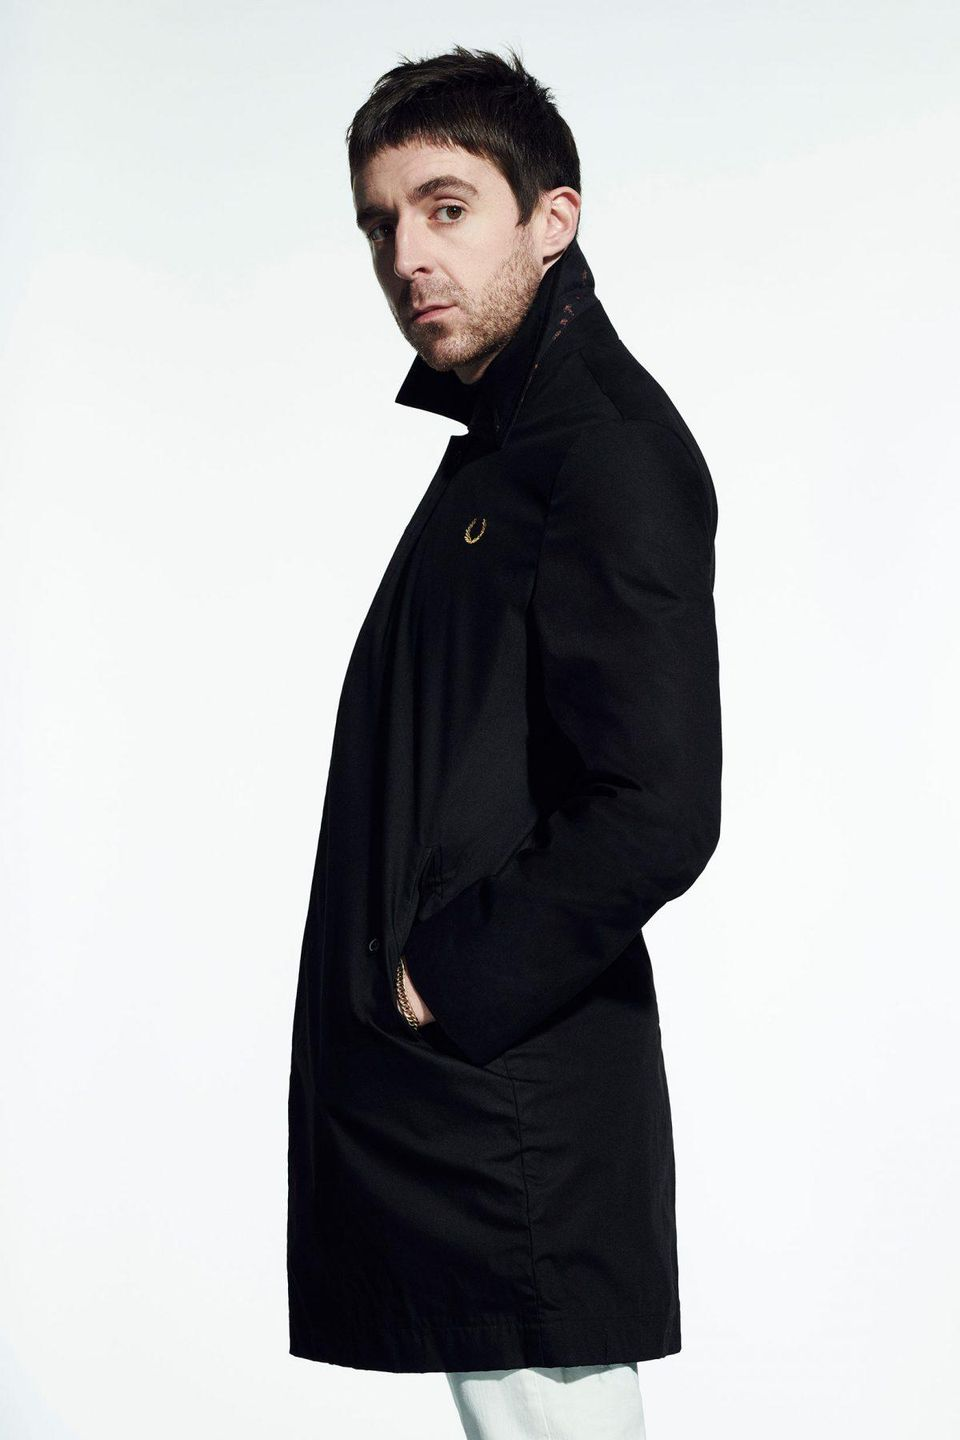 Fred Perry x Miles Kane